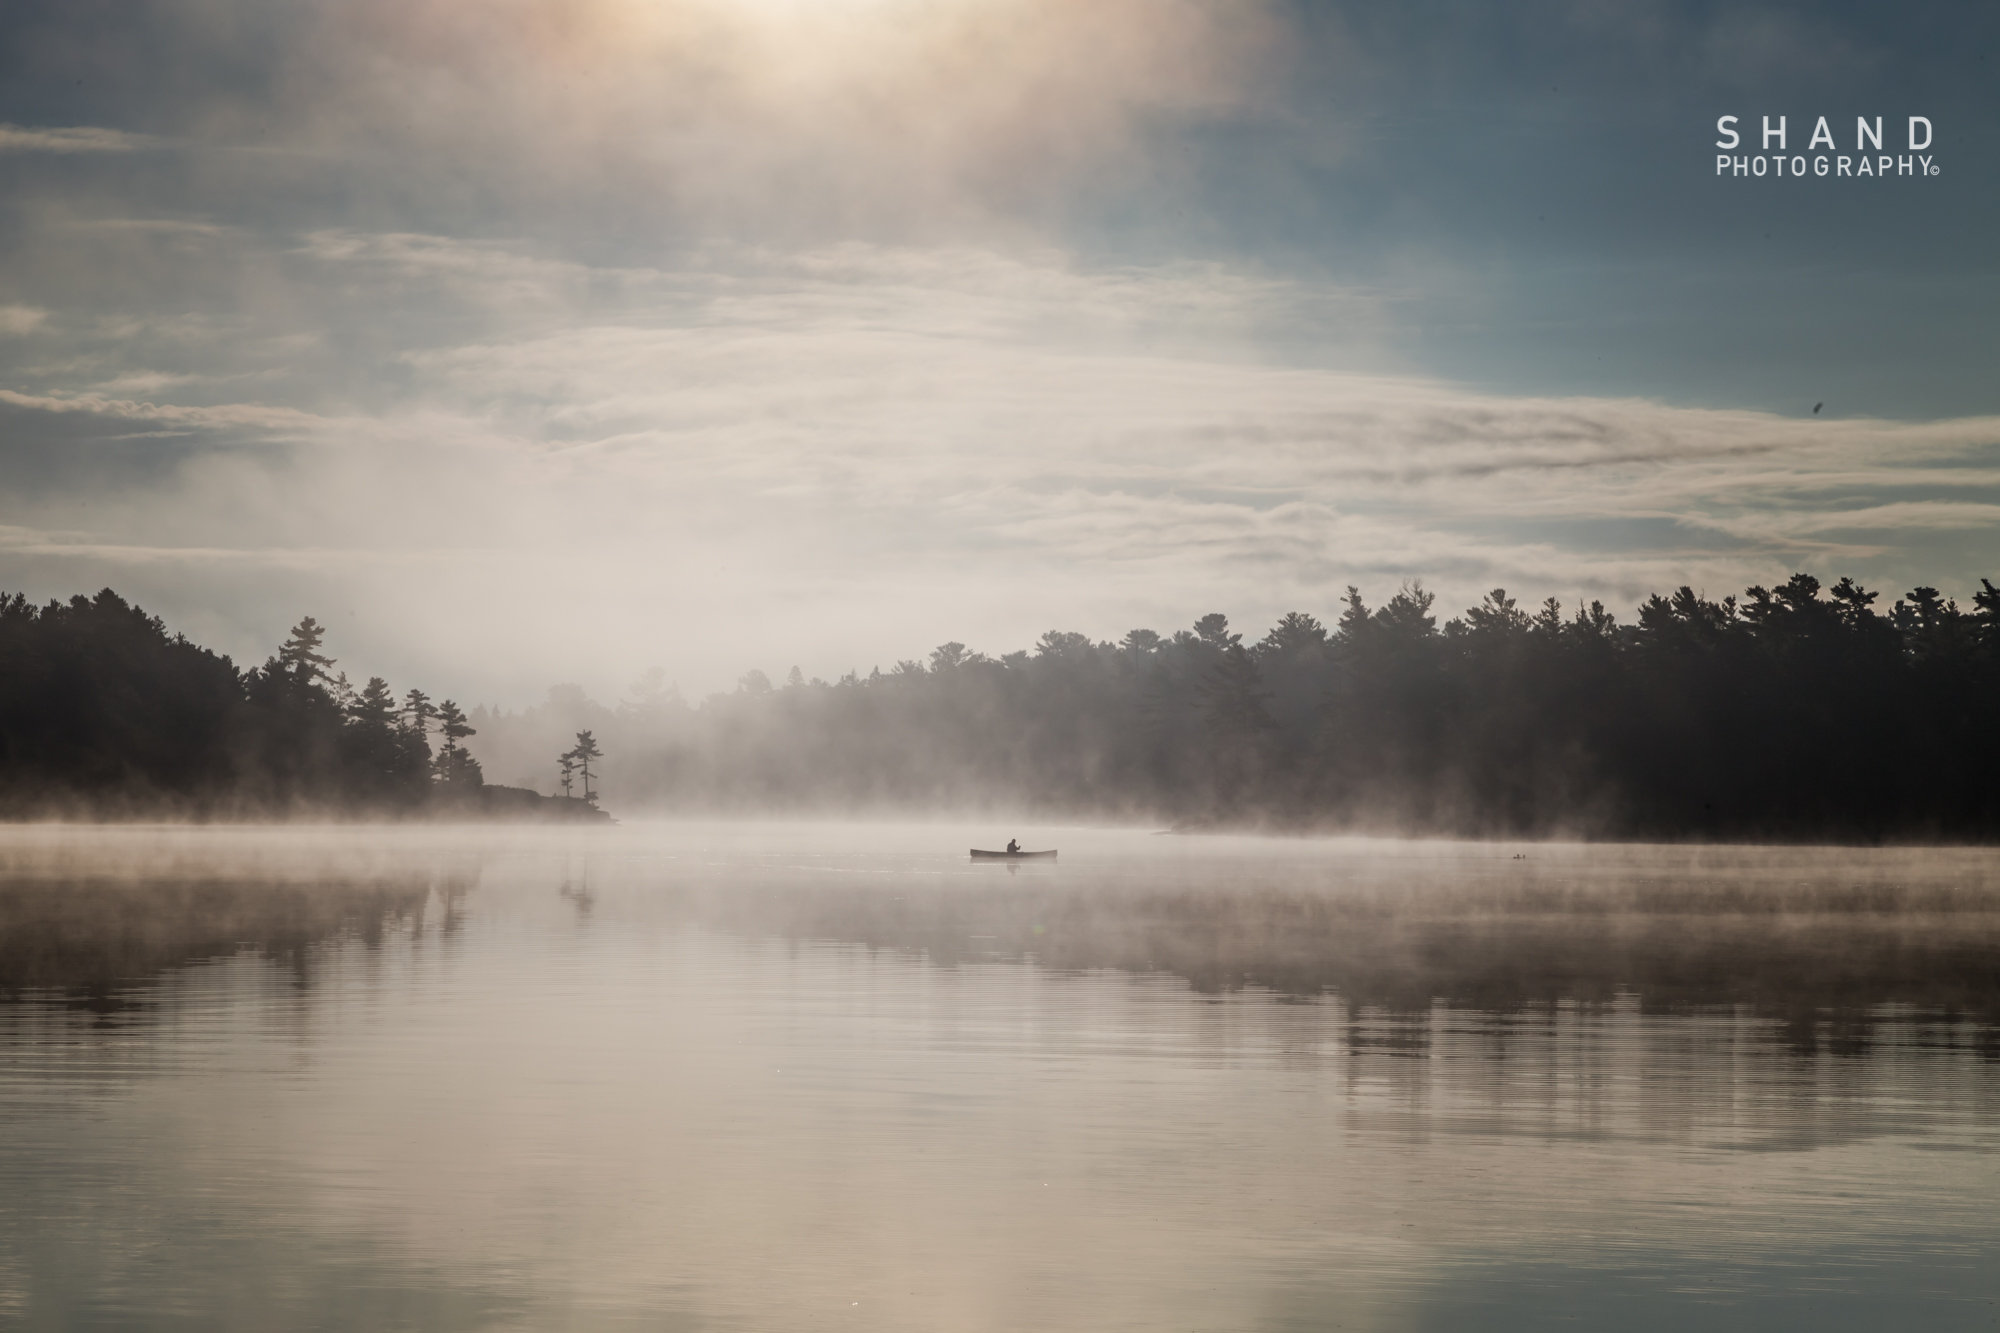 Morning Paddle in the Mist